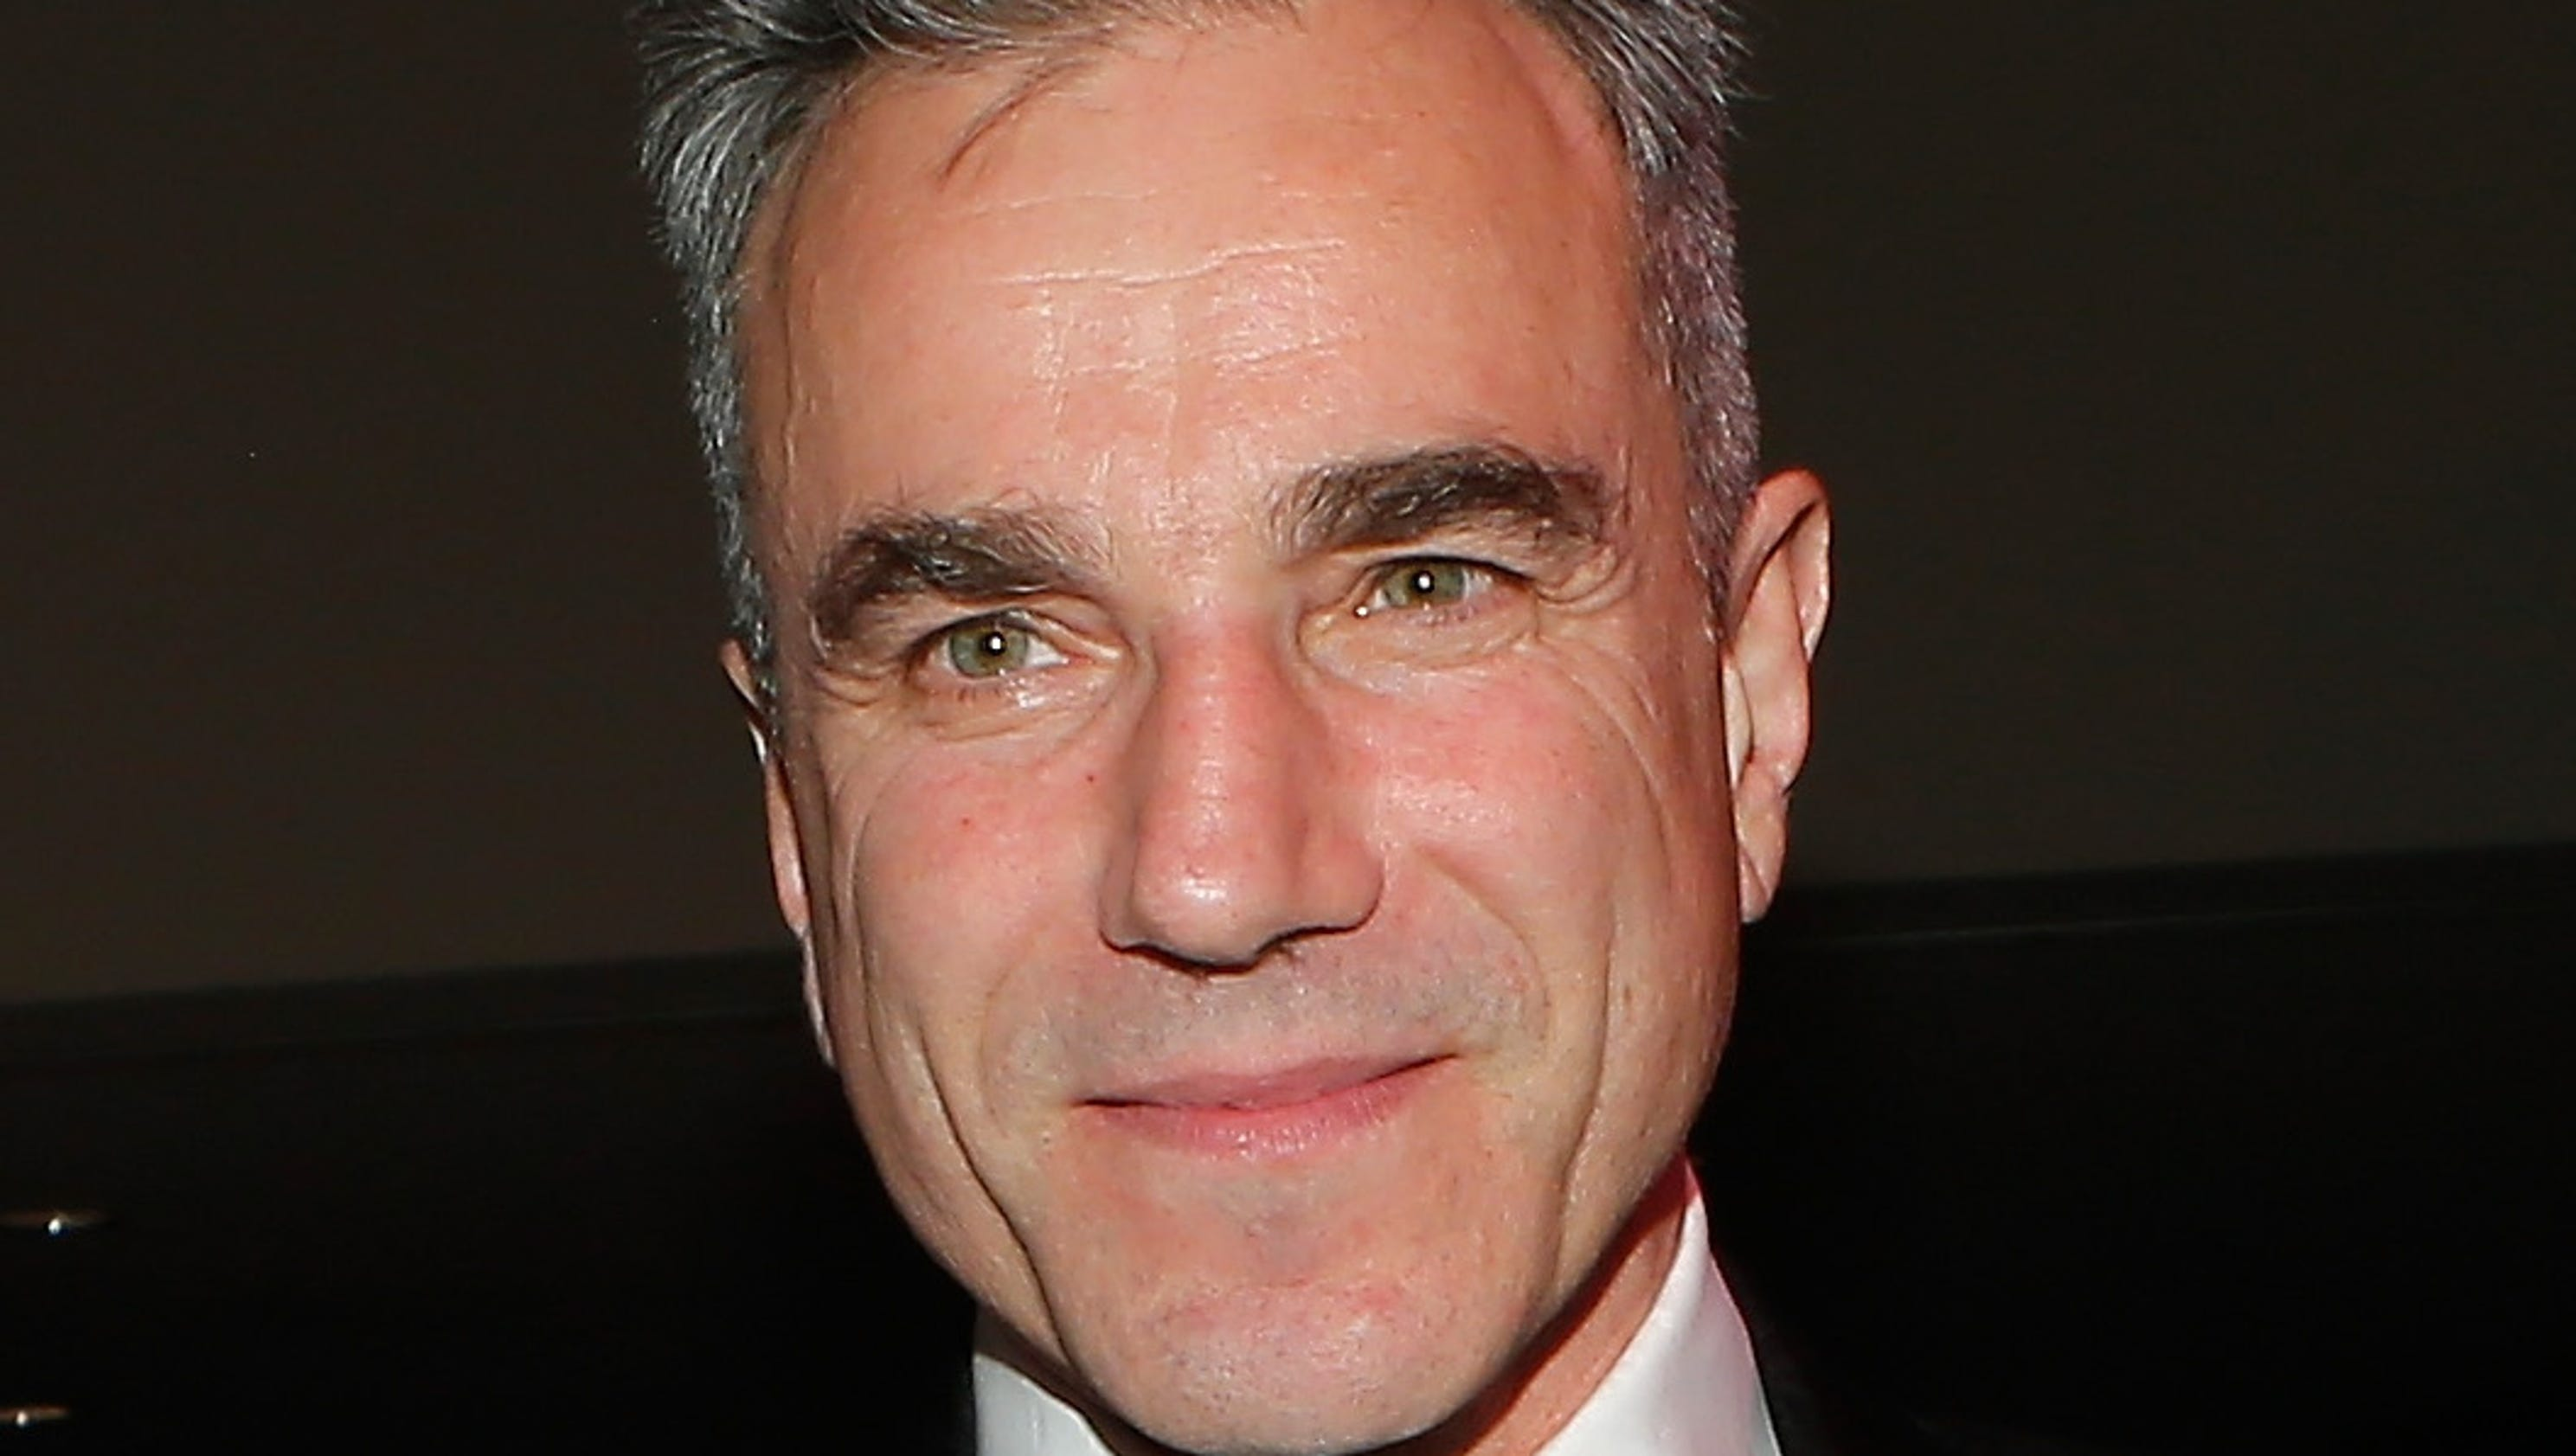 ethics of daniel day lewis Daniel day-lewis actor videos and latest news articles globalnewsca your source for the latest news on daniel day-lewis actor.